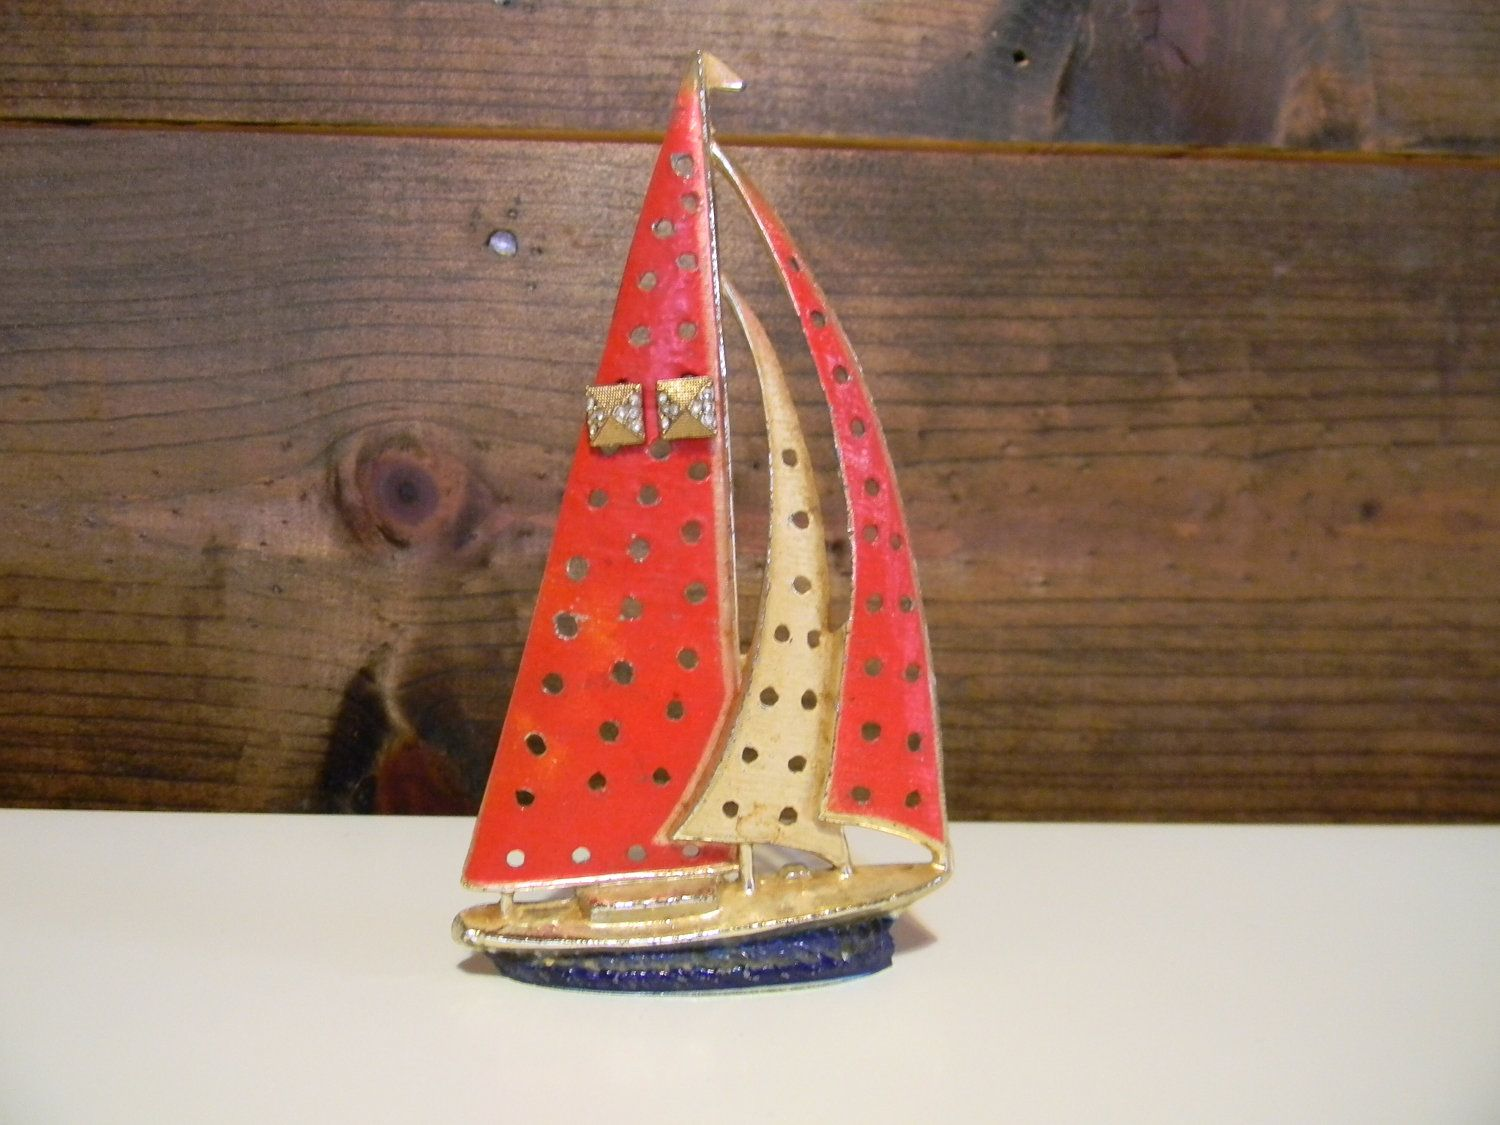 Vintage Sailing Ship Earring Holder By Fandjsurvives On Etsy